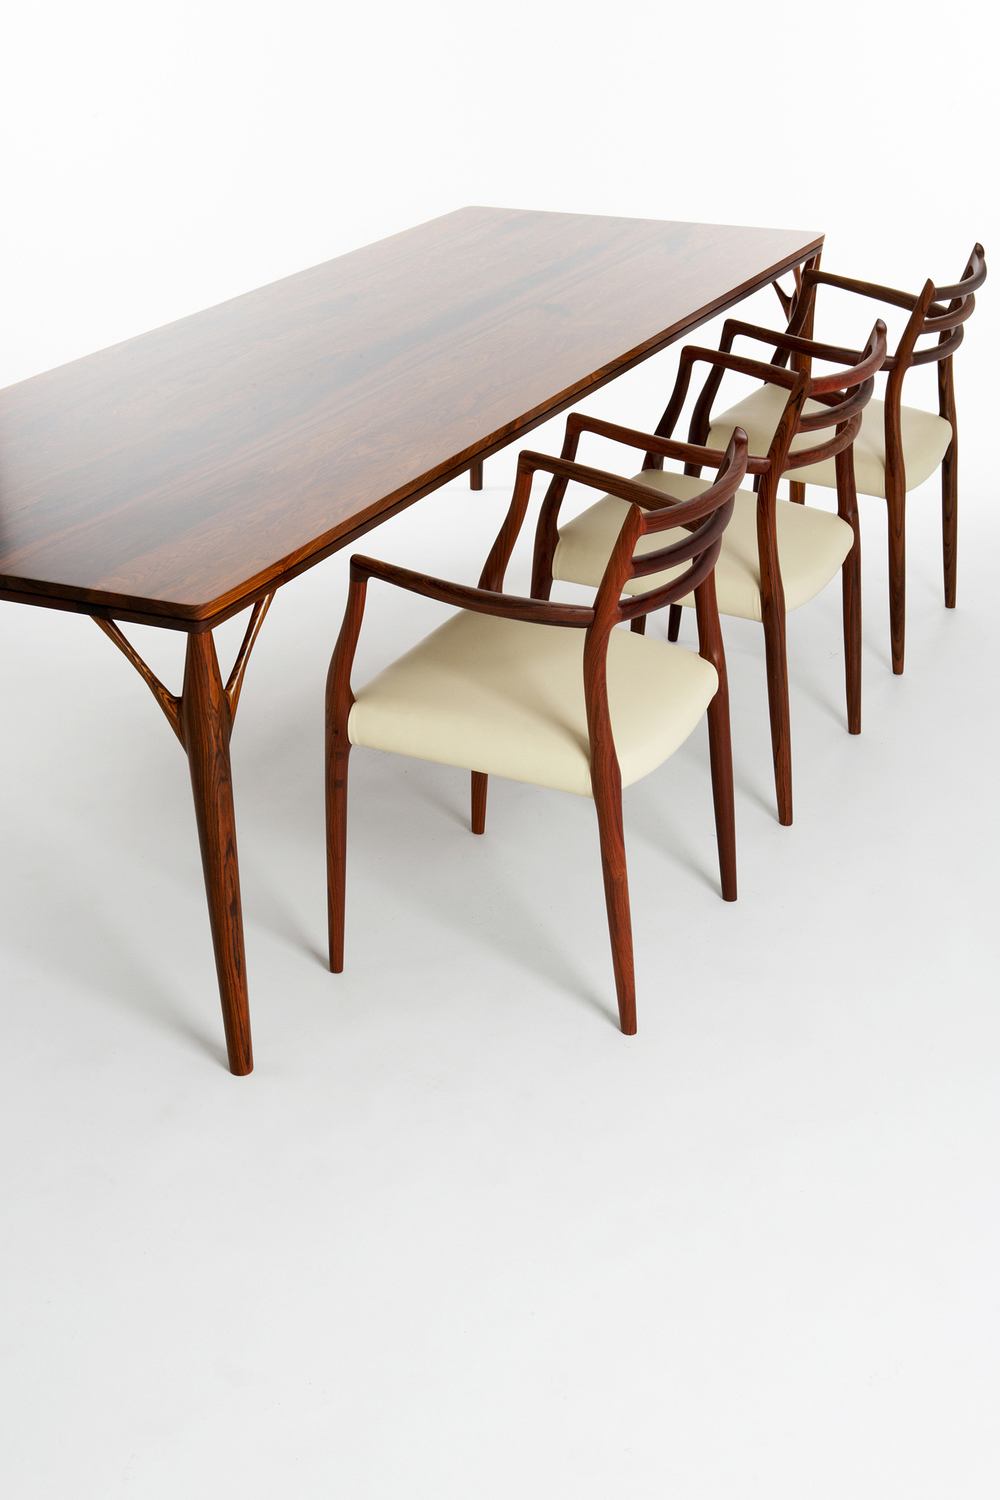 PD55 dining table4_resize.jpg